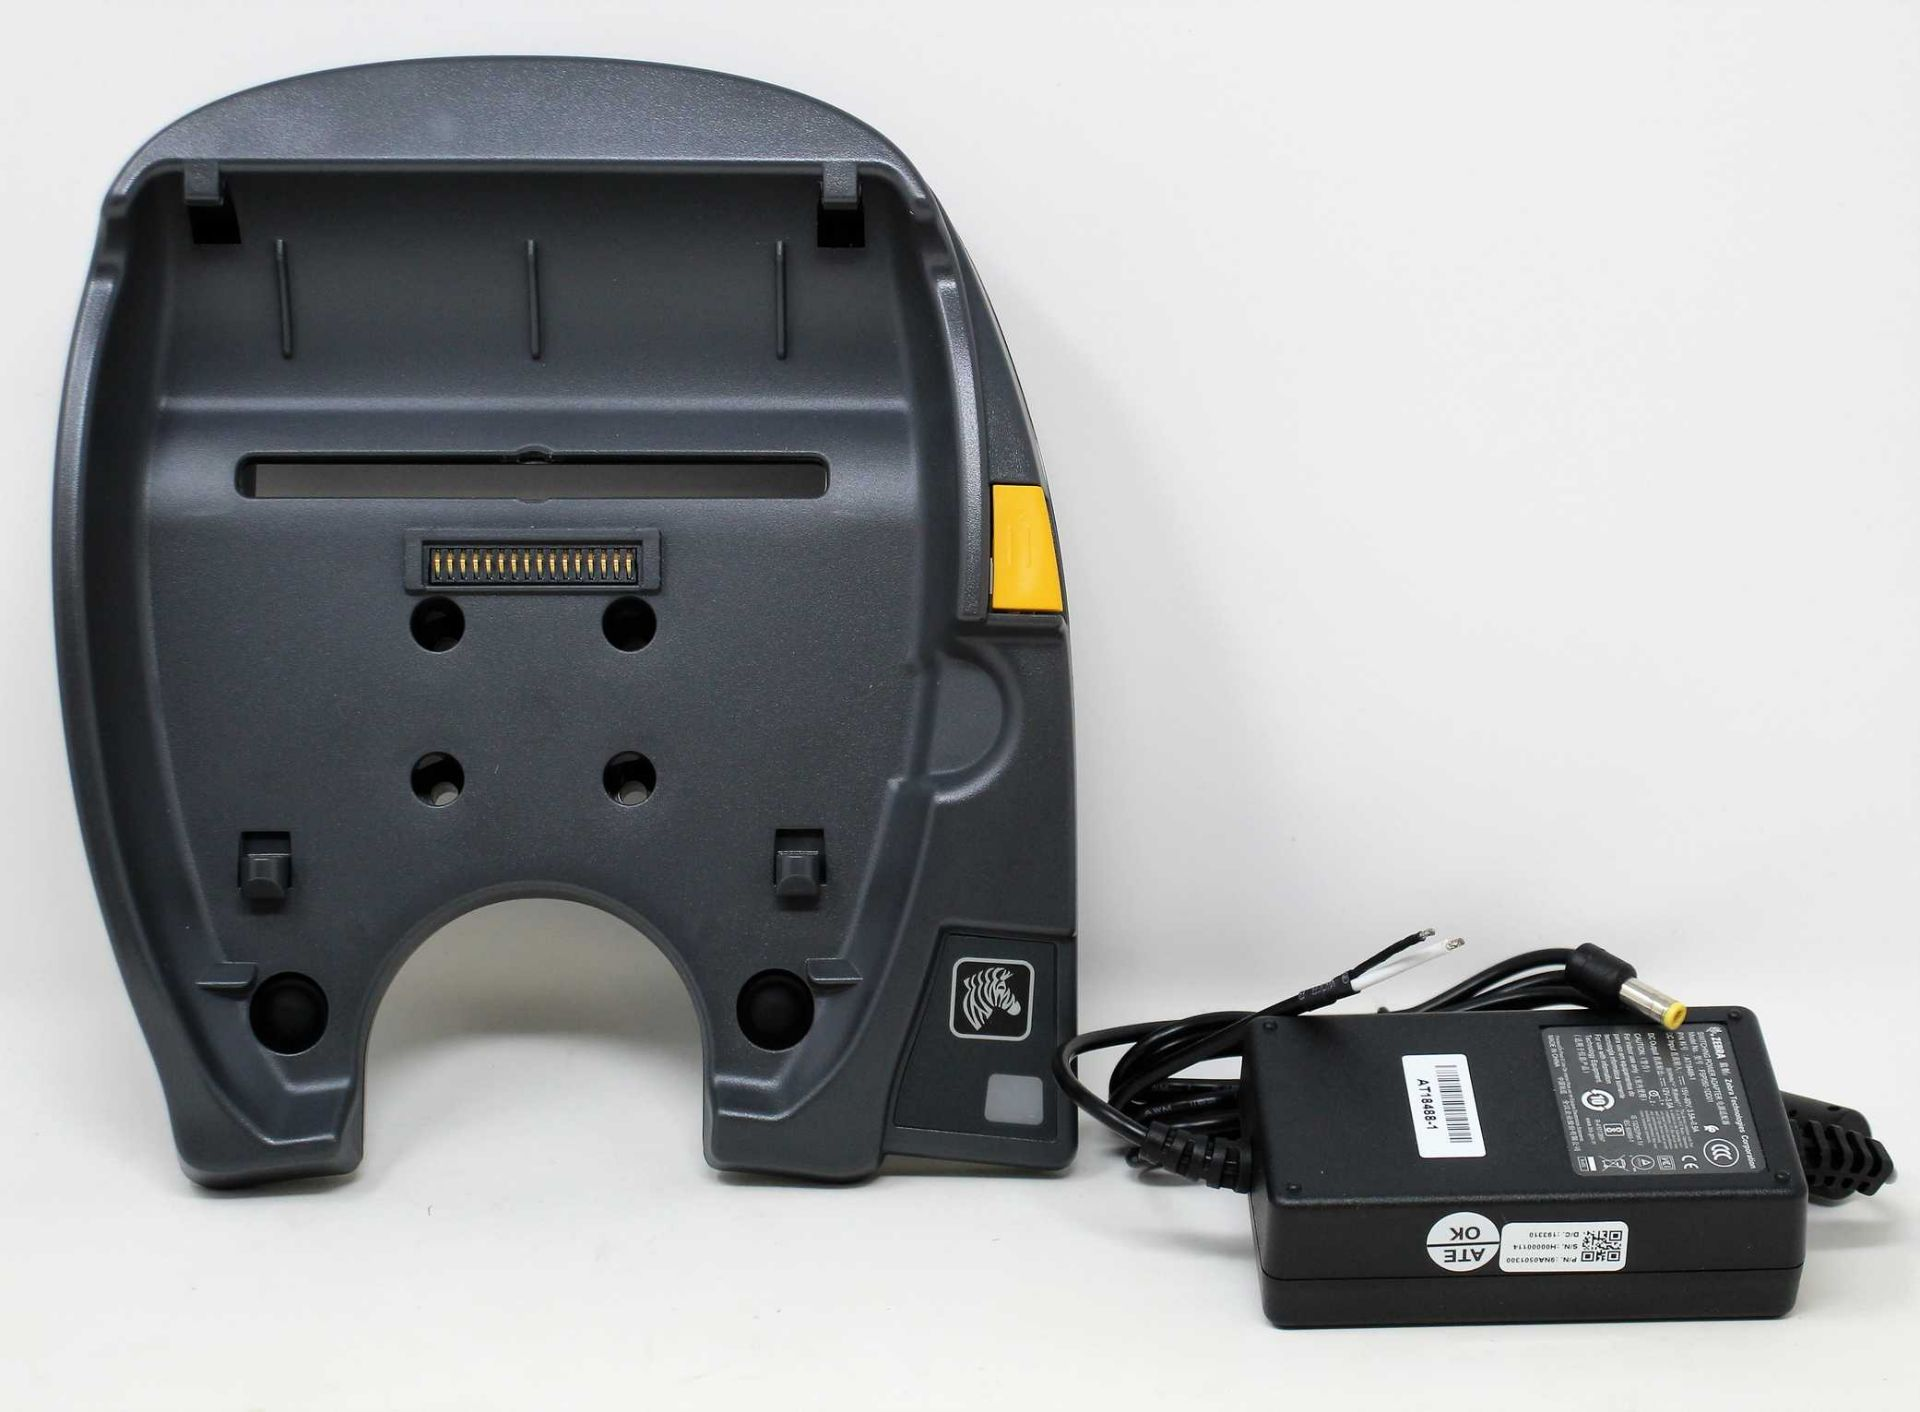 A boxed as new Zebra QLn420 Forklift Vehicle Cradle (Power adaptor and software included) (Model: